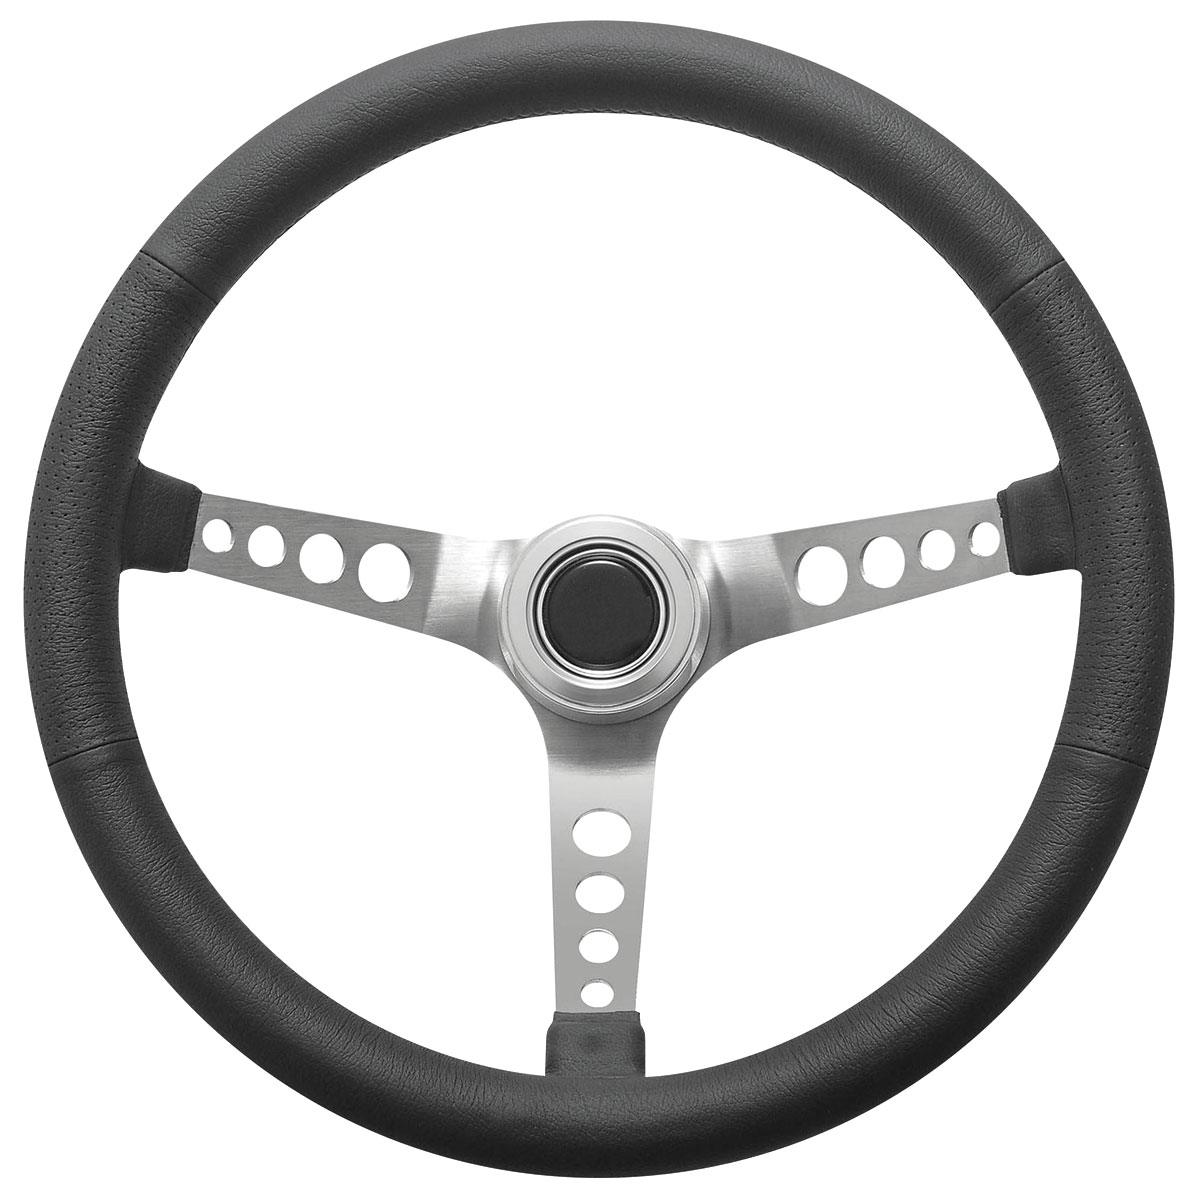 Steering Wheel Kit, 1969-89 GM, Retro w/Holes, Plain Cap Polished, Hi-Rise